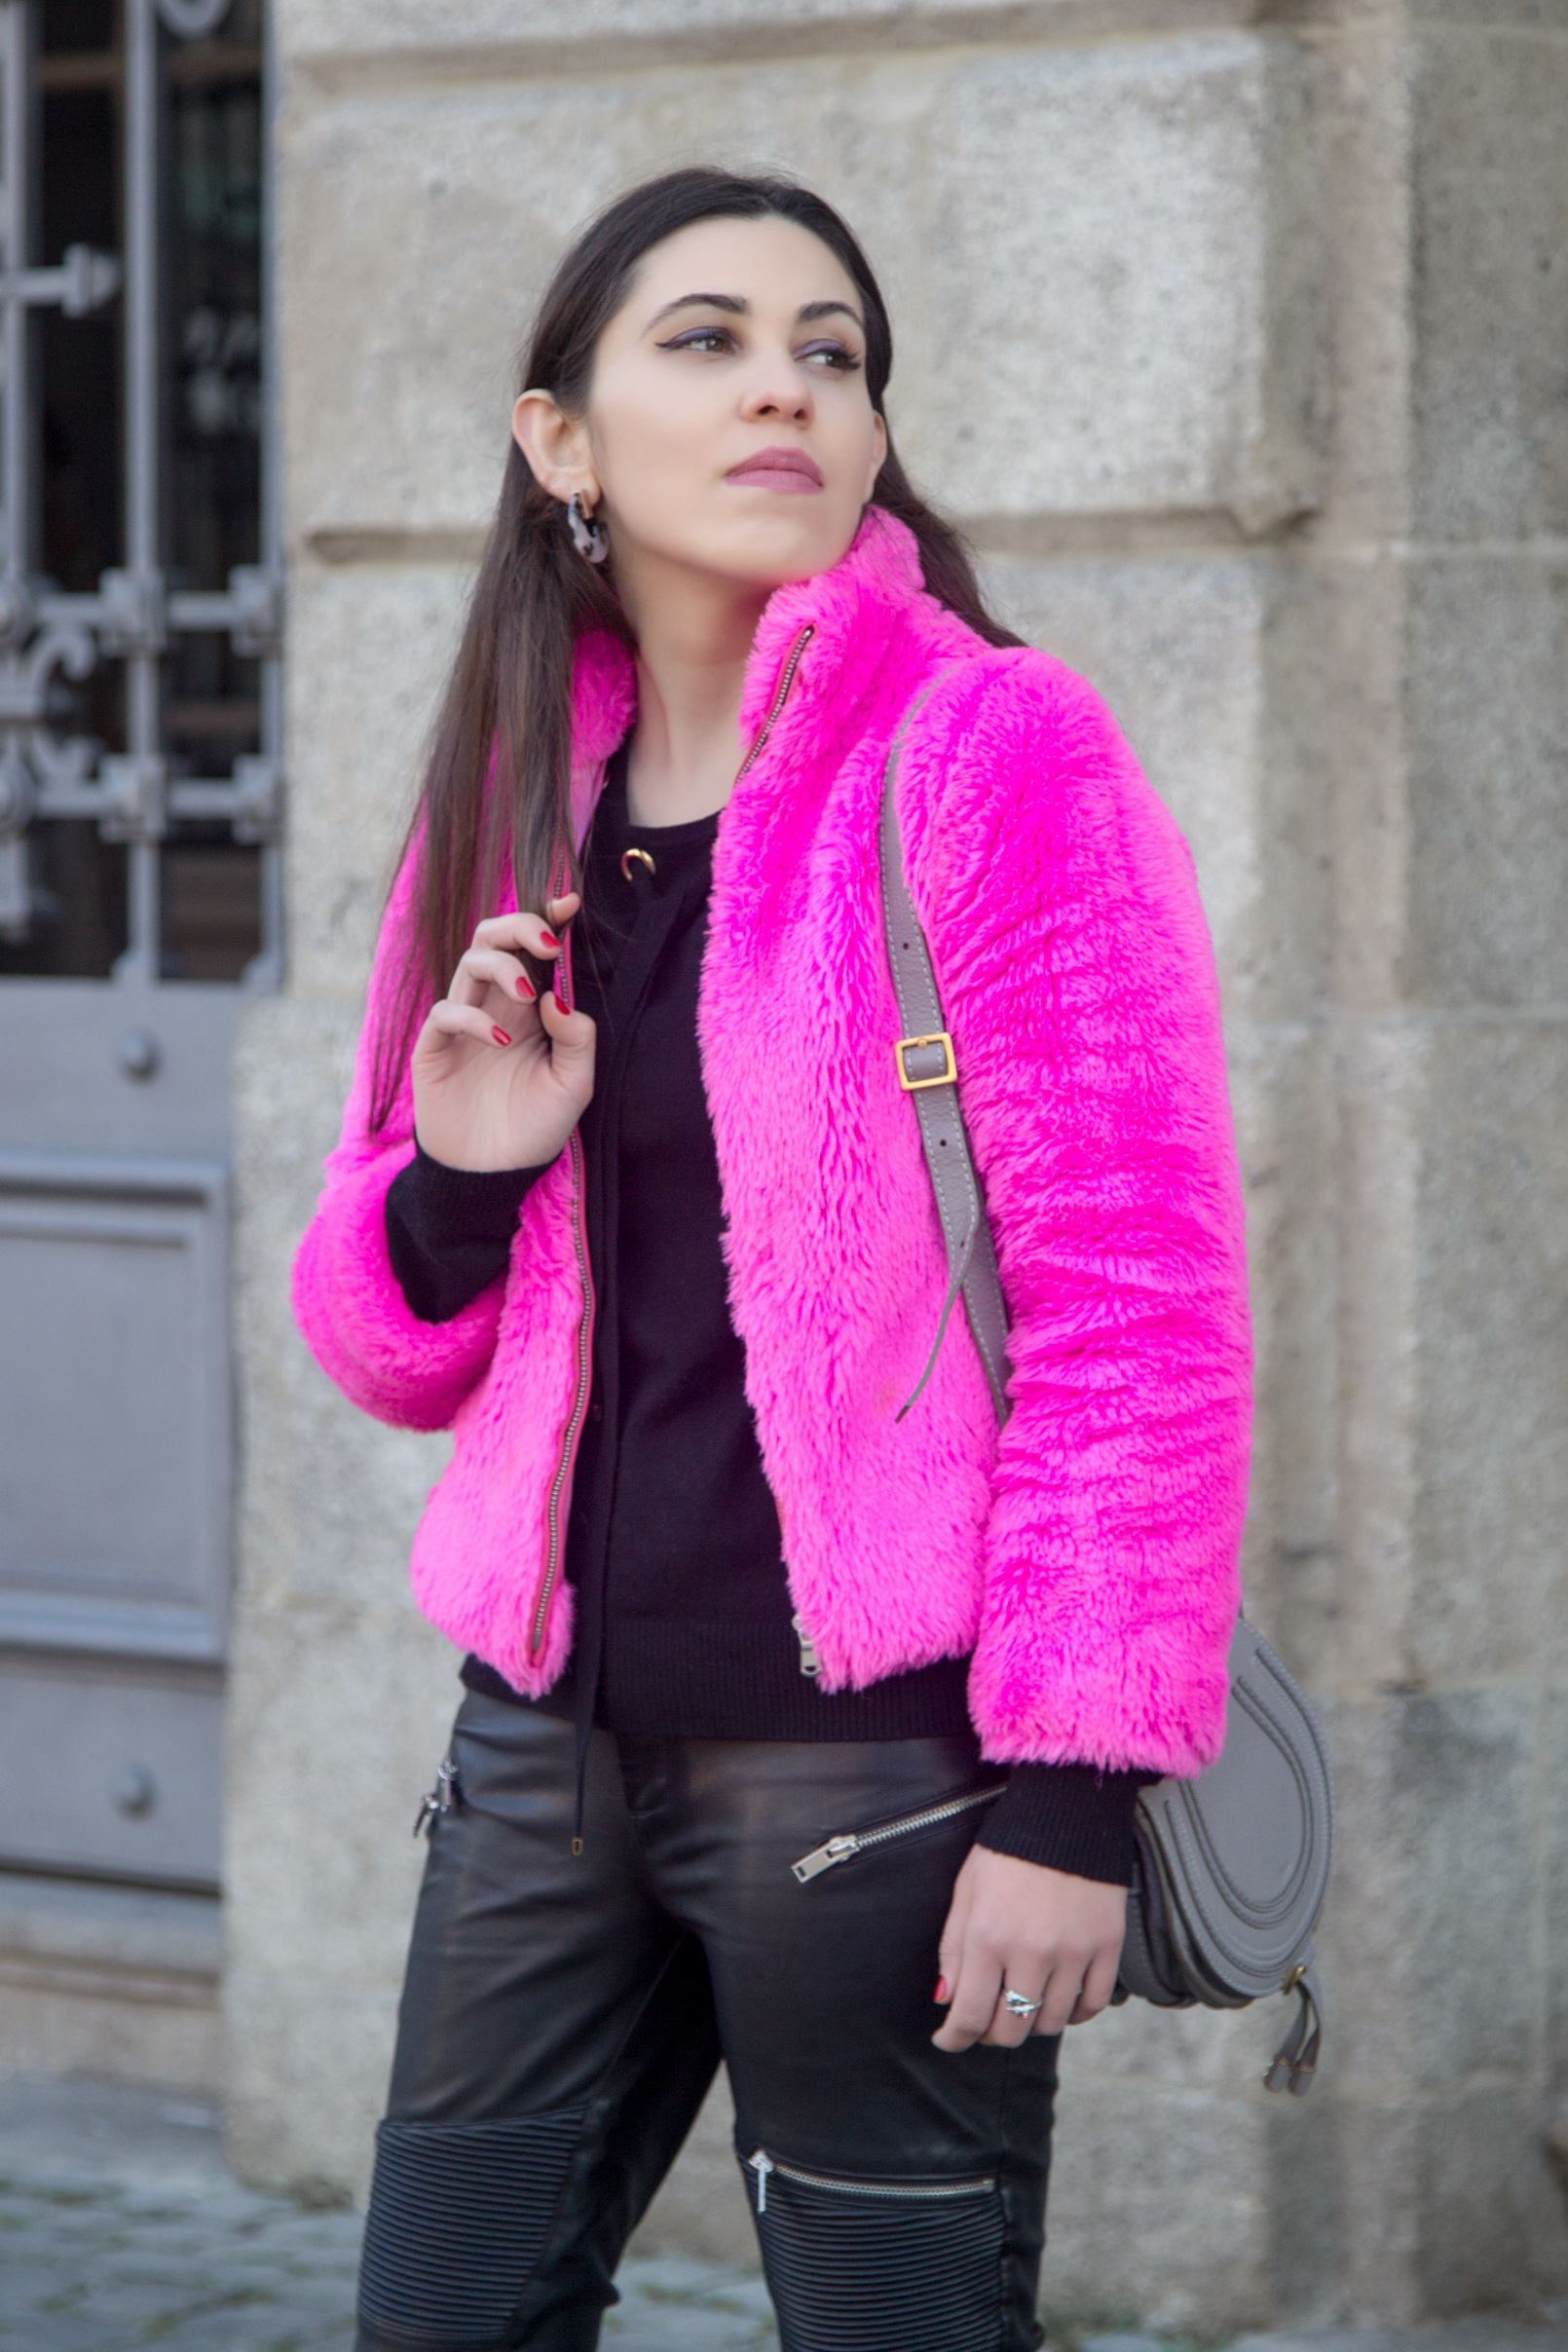 Le Fashionaire blogger catarine martins faux fur pink benetton fluffy winter coat chloe grey leather mini marcie bag Stone purple hoop parfois 4829 EN blogger catarine martins faux fur pink benetton fluffy winter coat chloe grey leather mini marcie bag Stone purple hoop parfois 4829 EN